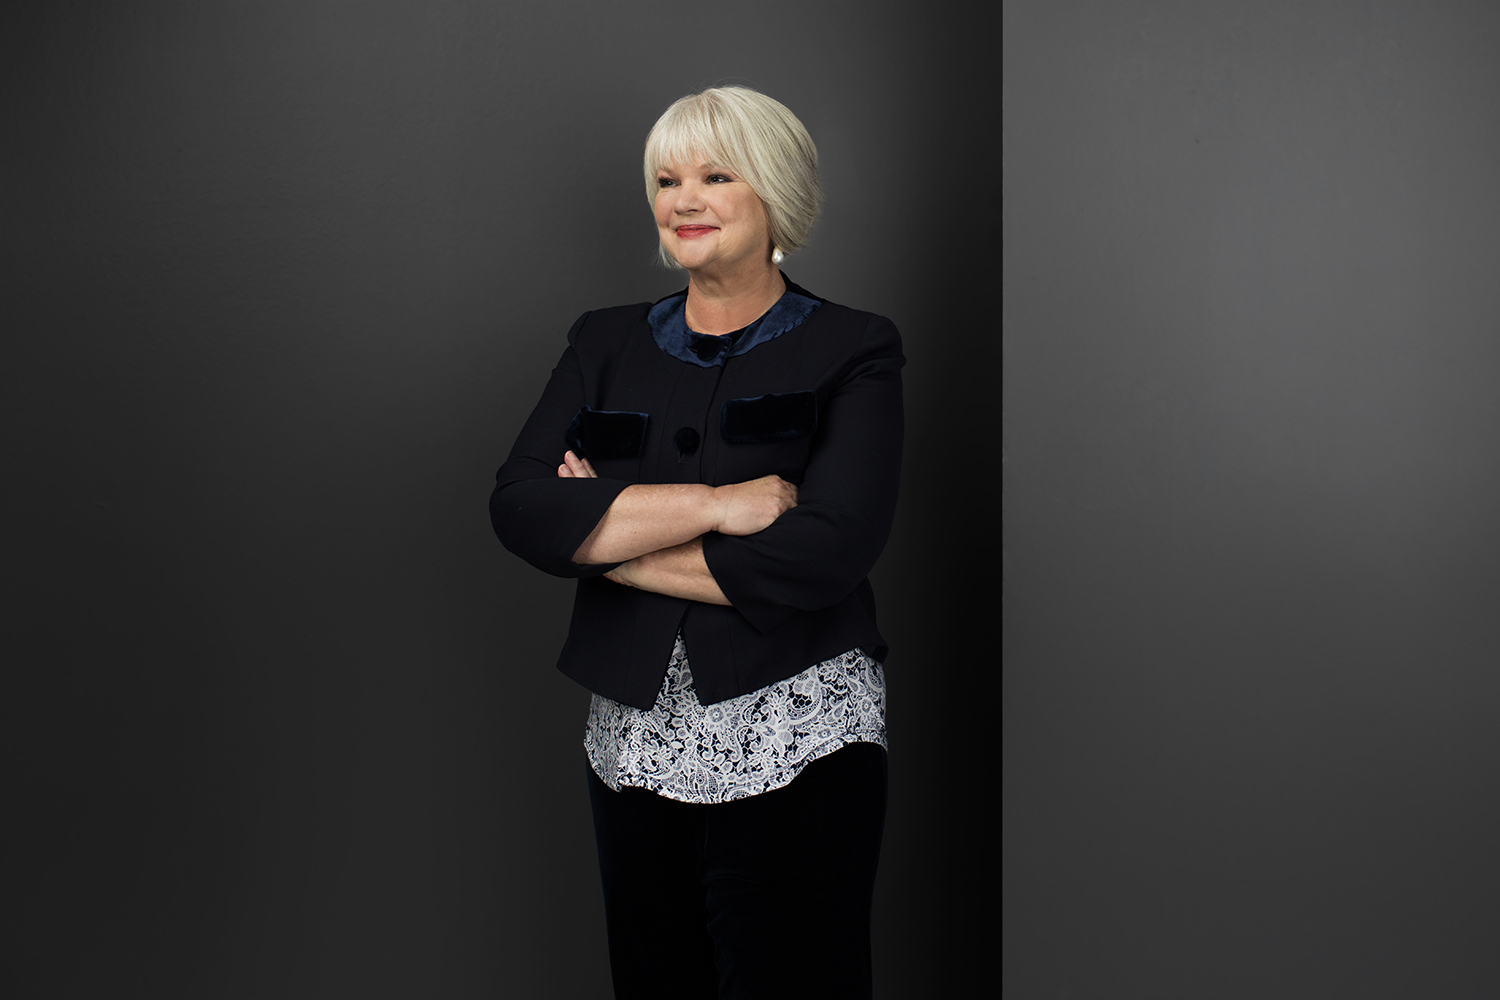 Connie Mckeage - Board member of OneVentures, leading Australian Venture Capital firm